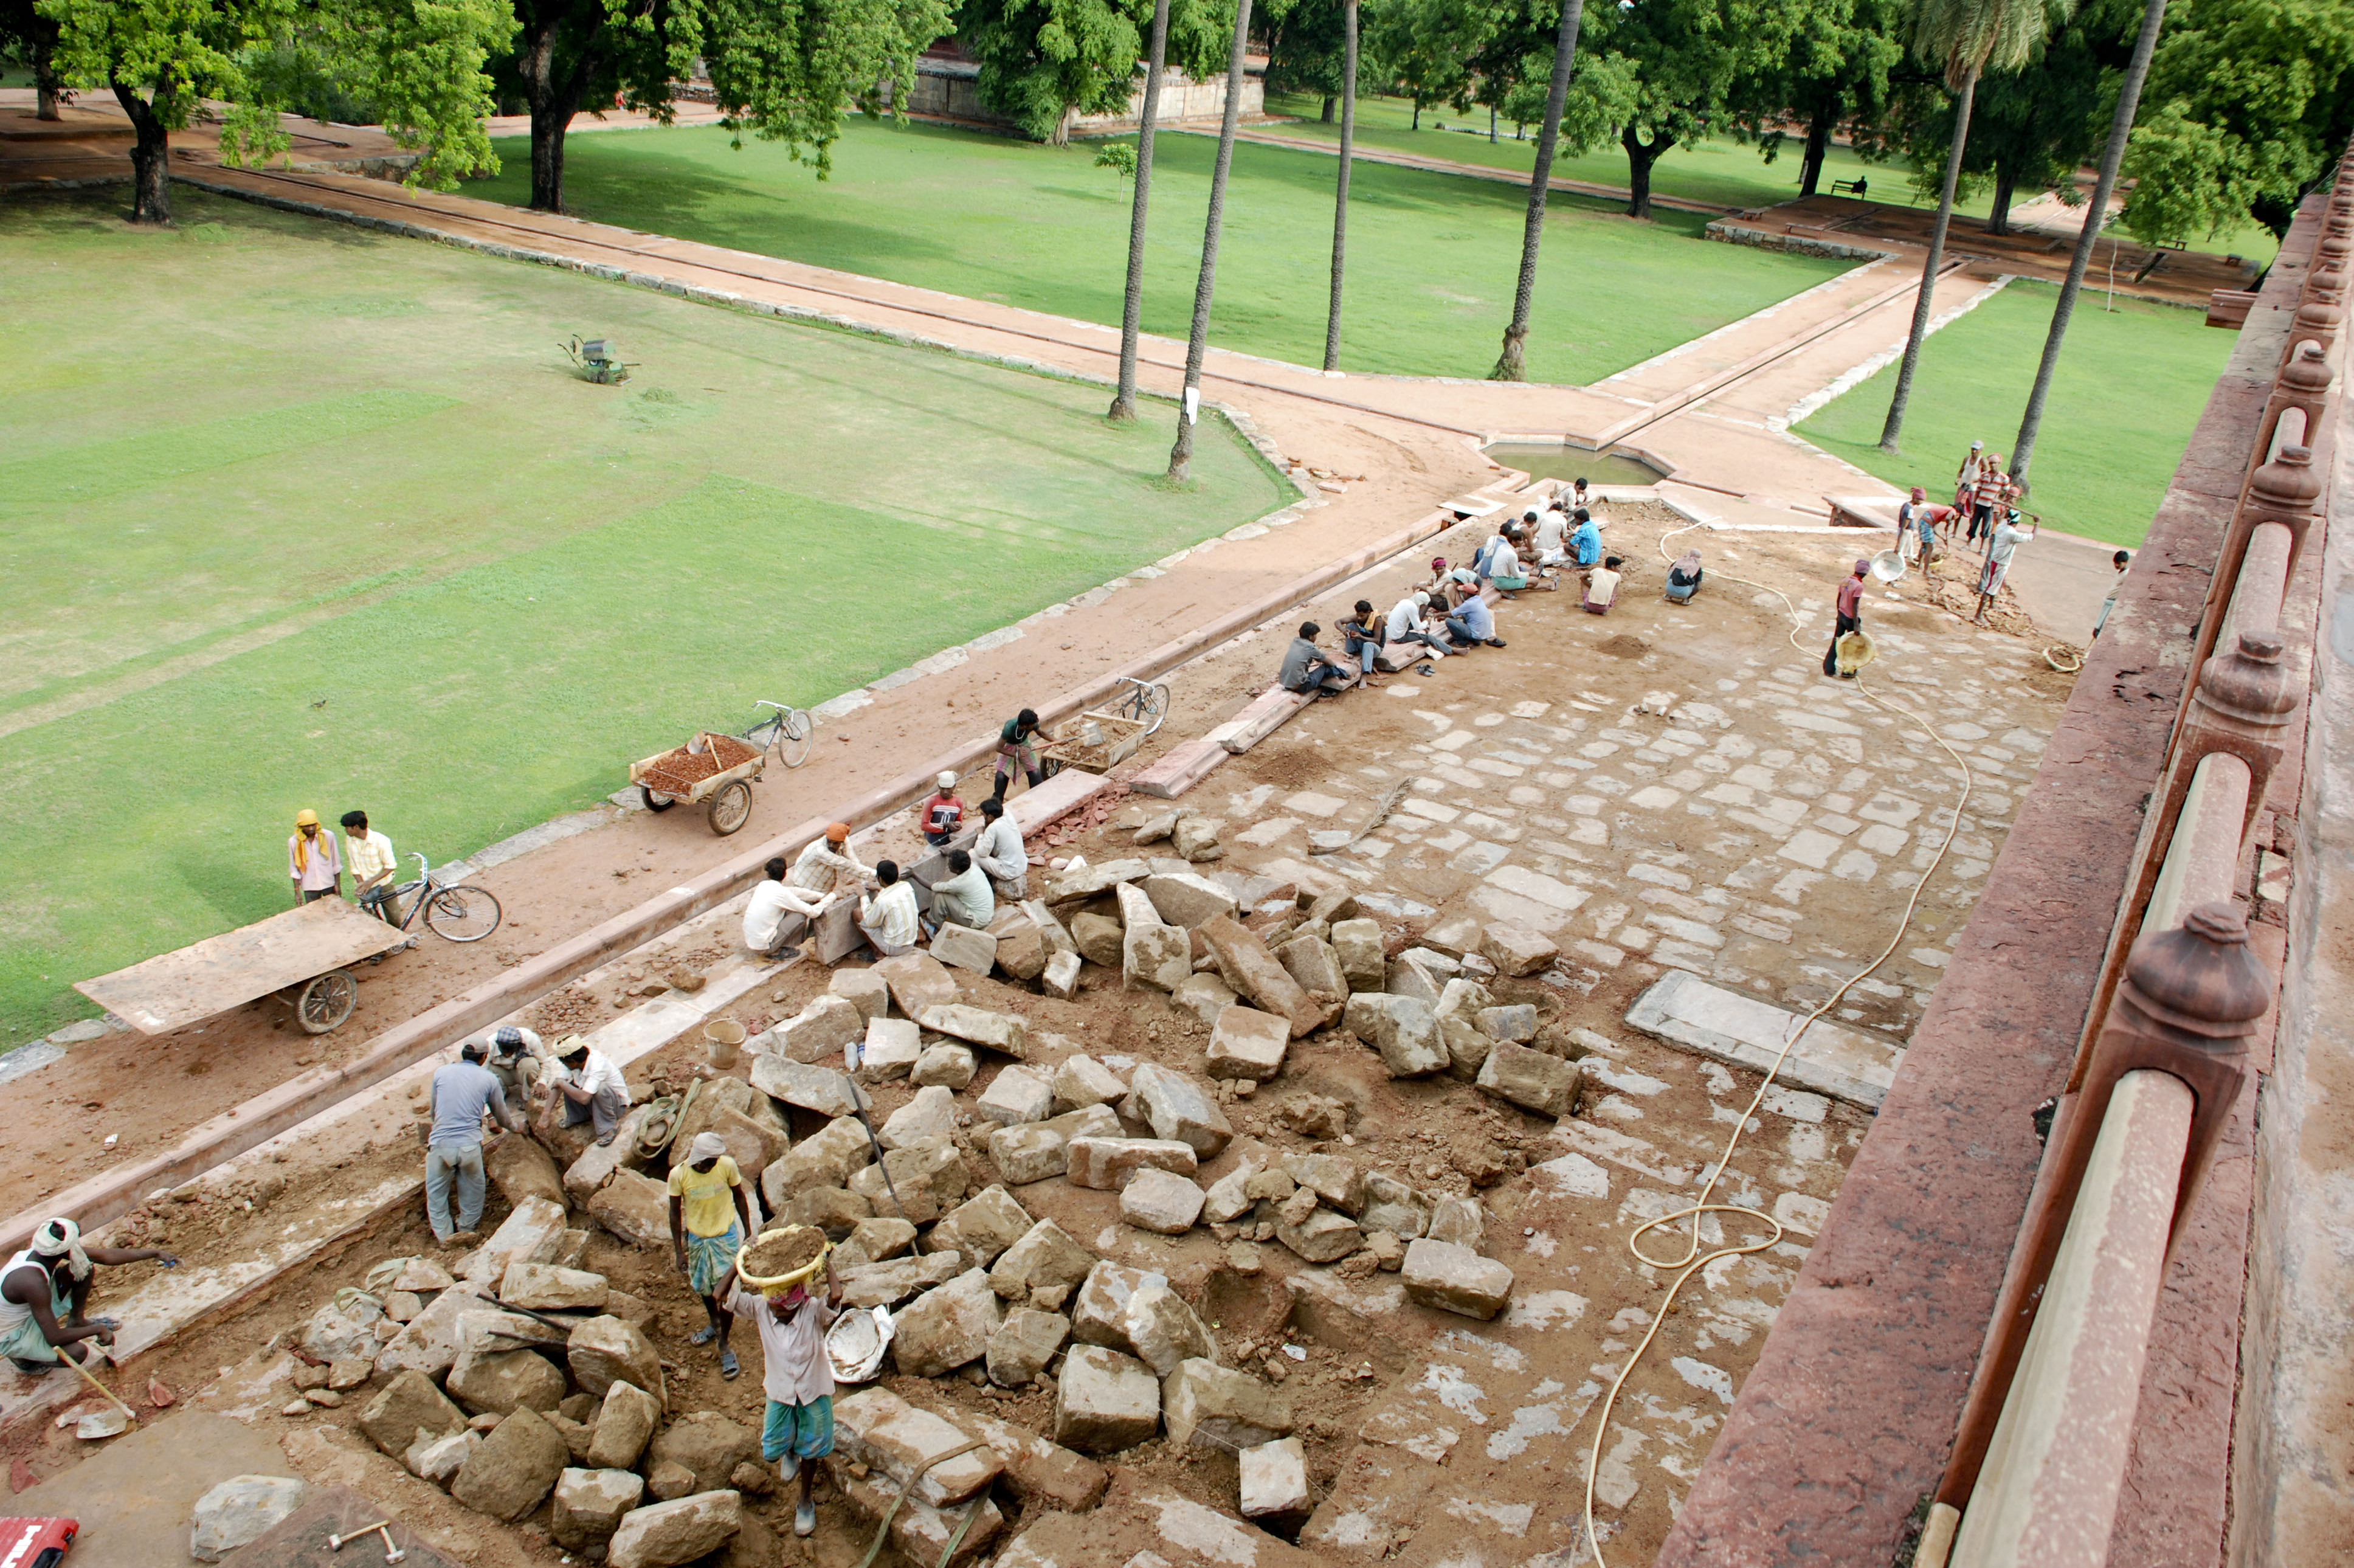 This shows the restoration of the stone paving on the lower plinth. Workmen manually lifted some 12,000 square meters of stone blocks, most weighing more than a ton, to put in replacements.